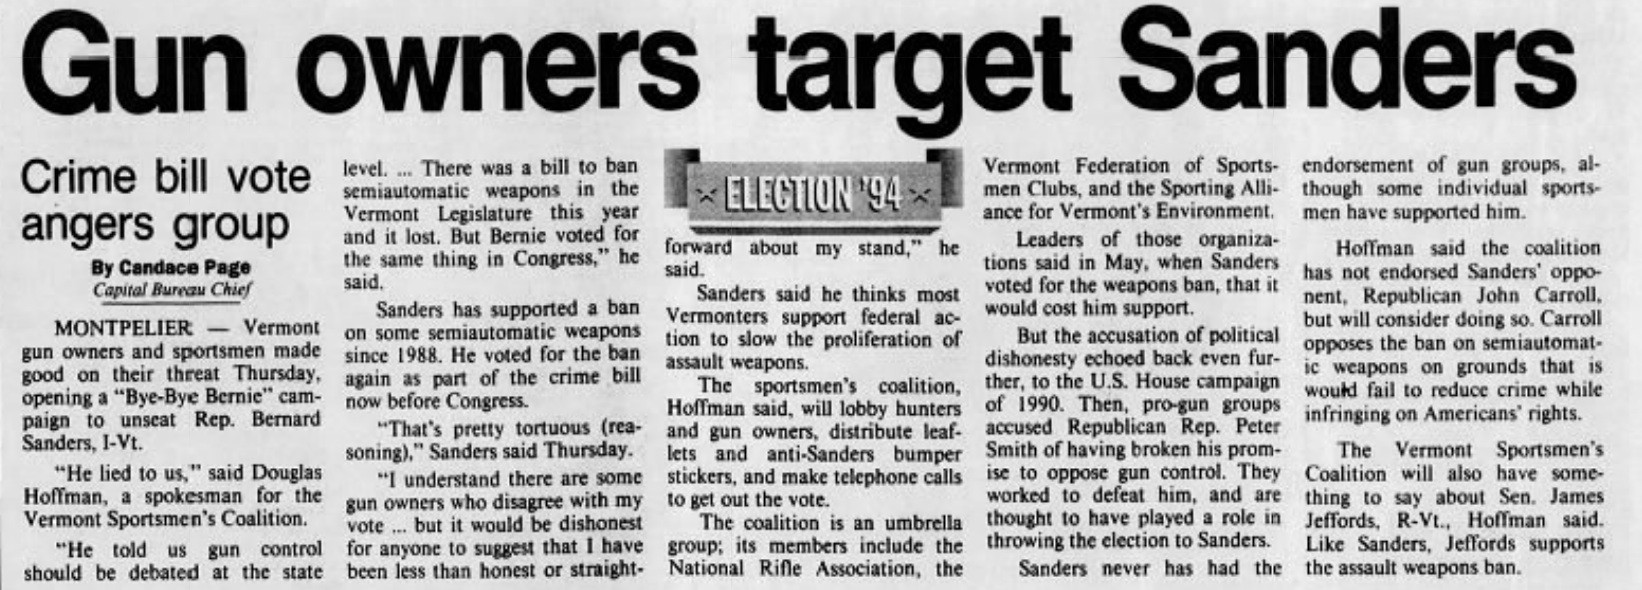 An August 26, 1994, account of the backlash Sanders faced after supporting an assault weapons ban - BURLINGTON FREE PRESS